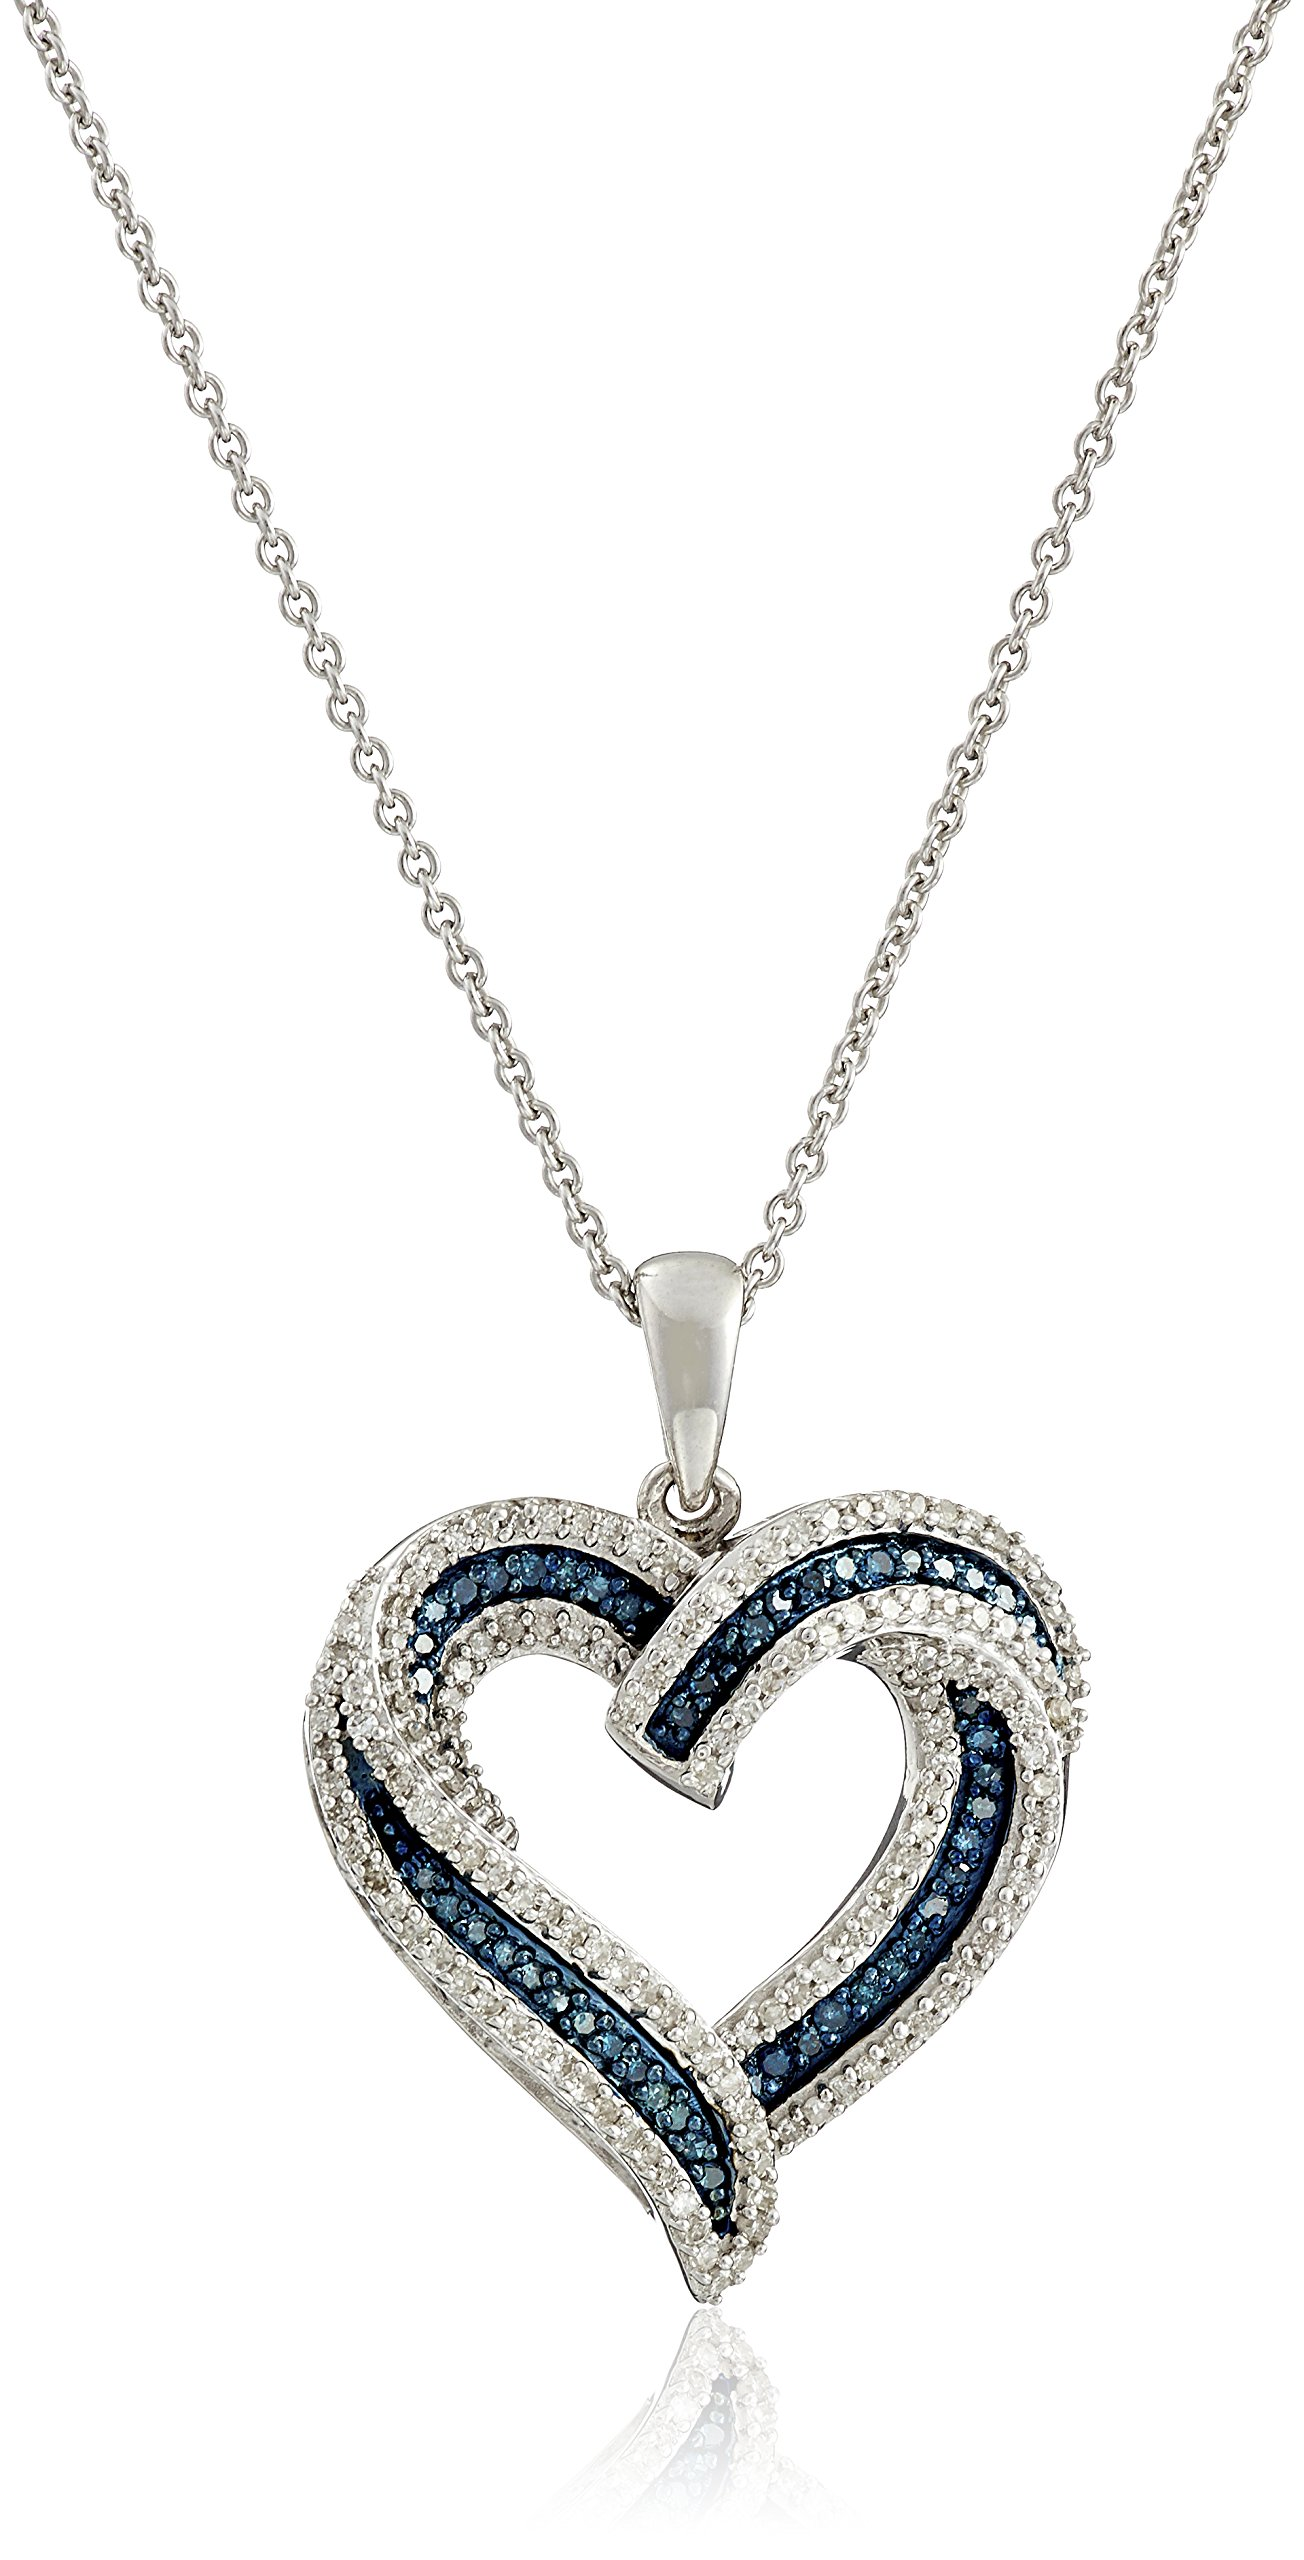 Sterling Silver Blue and White Diamond Heart Pendant Necklace (1/2 cttw), 18''